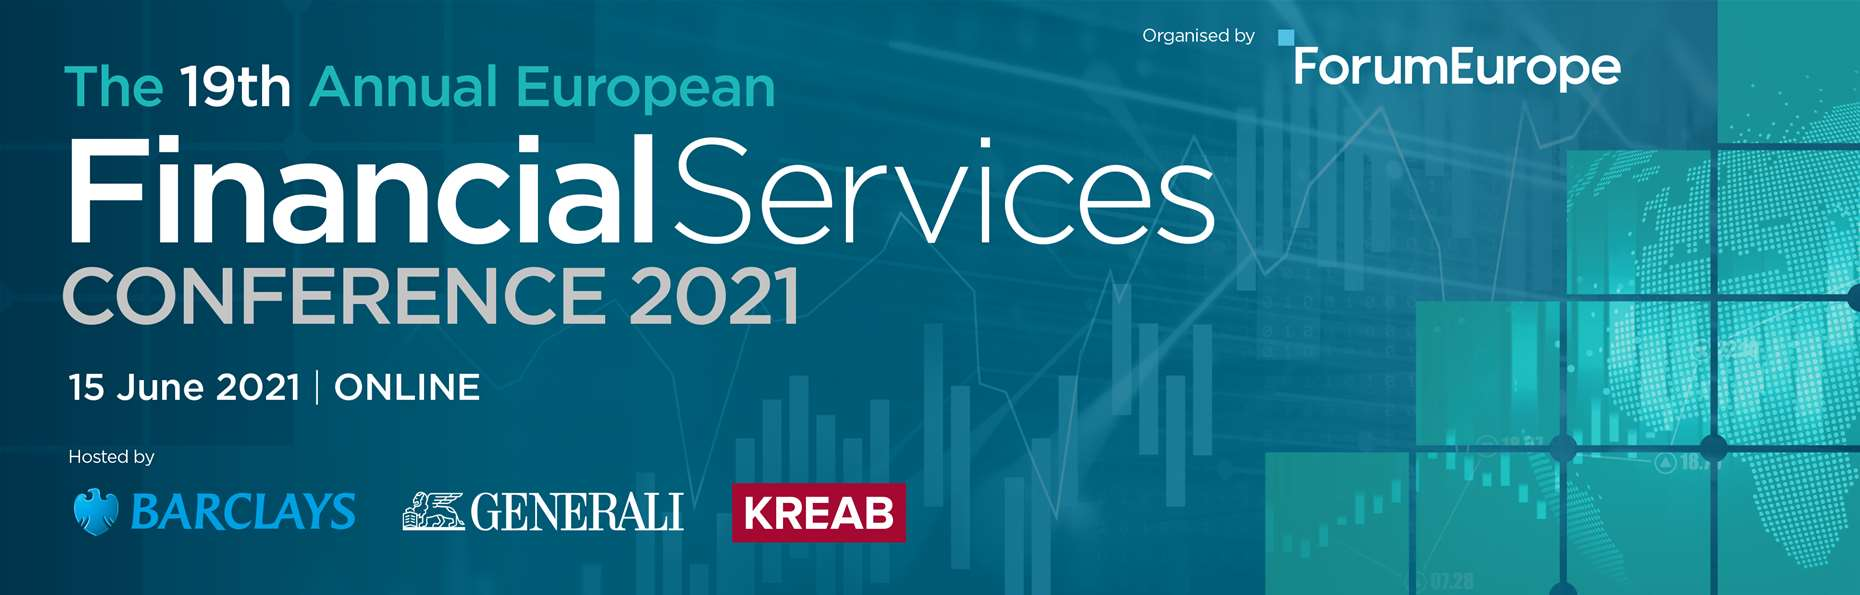 The 19th Annual European Financial Services Conference